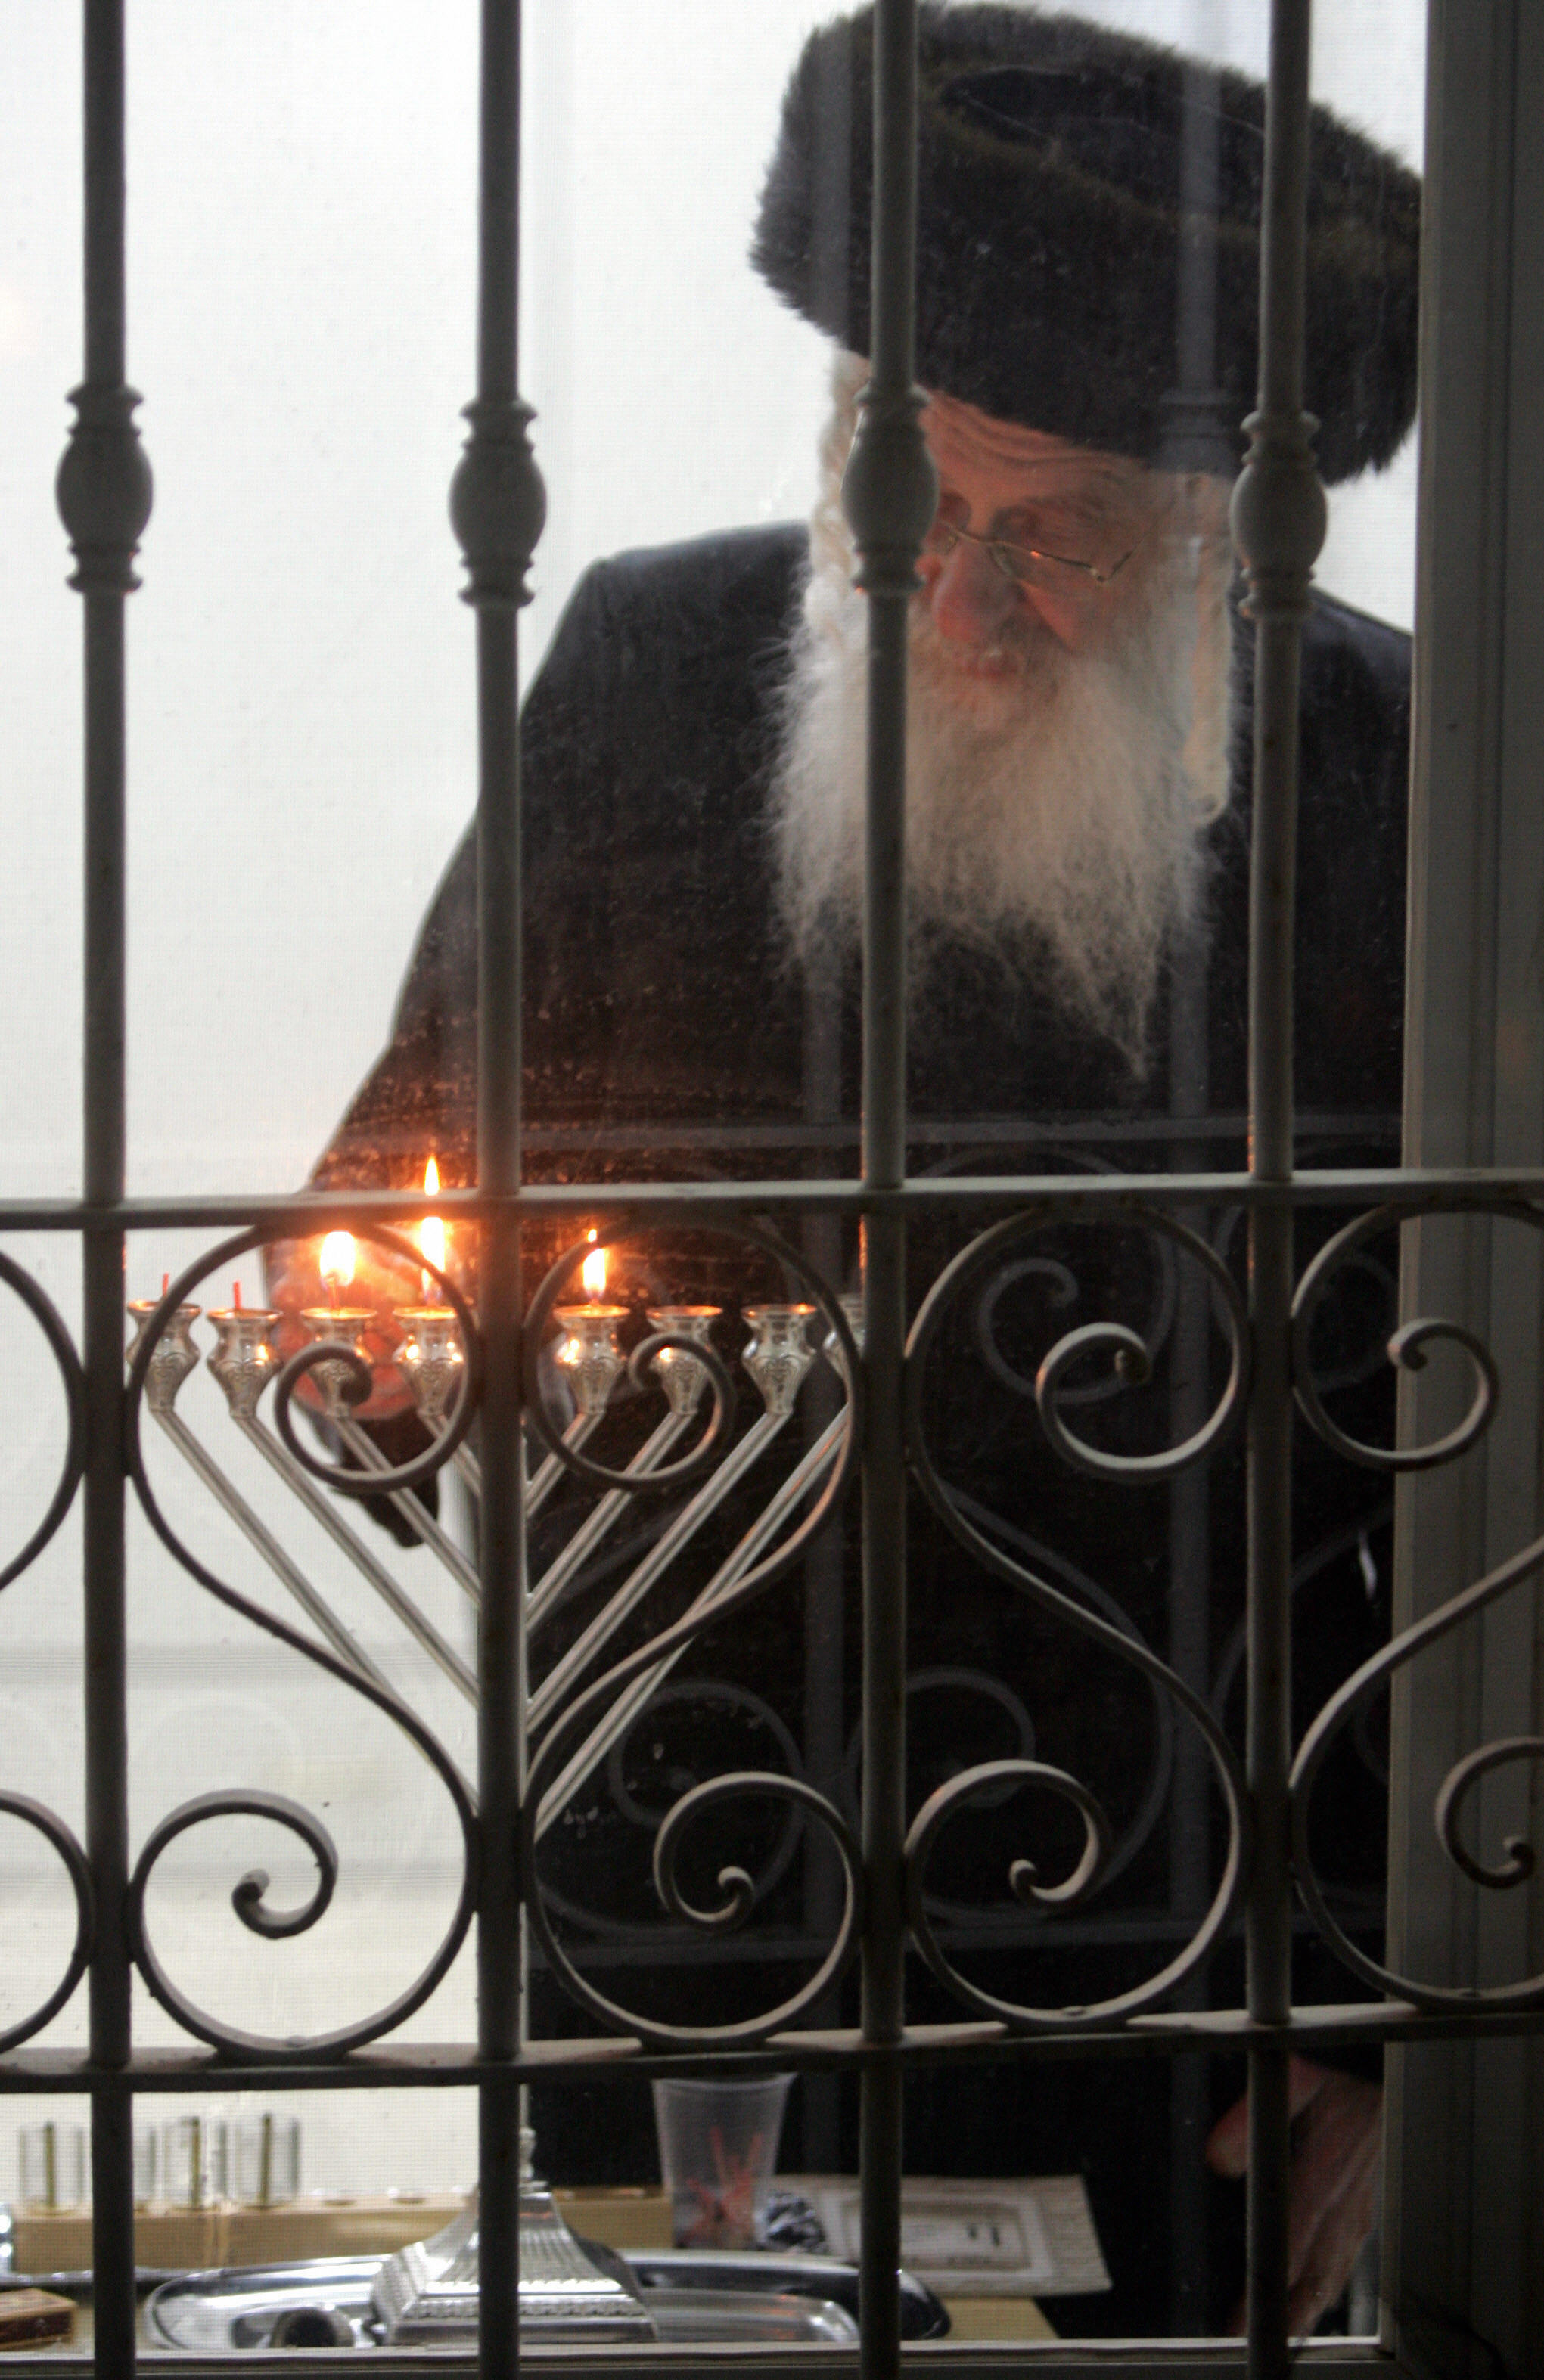 An Ultra-Orthodox Jewish man lights the candles of the fifth night of the Jewish holiday of Hanukah, in the ultra-Orthodox neighborhood of Mea Shearim in Jerusalem.